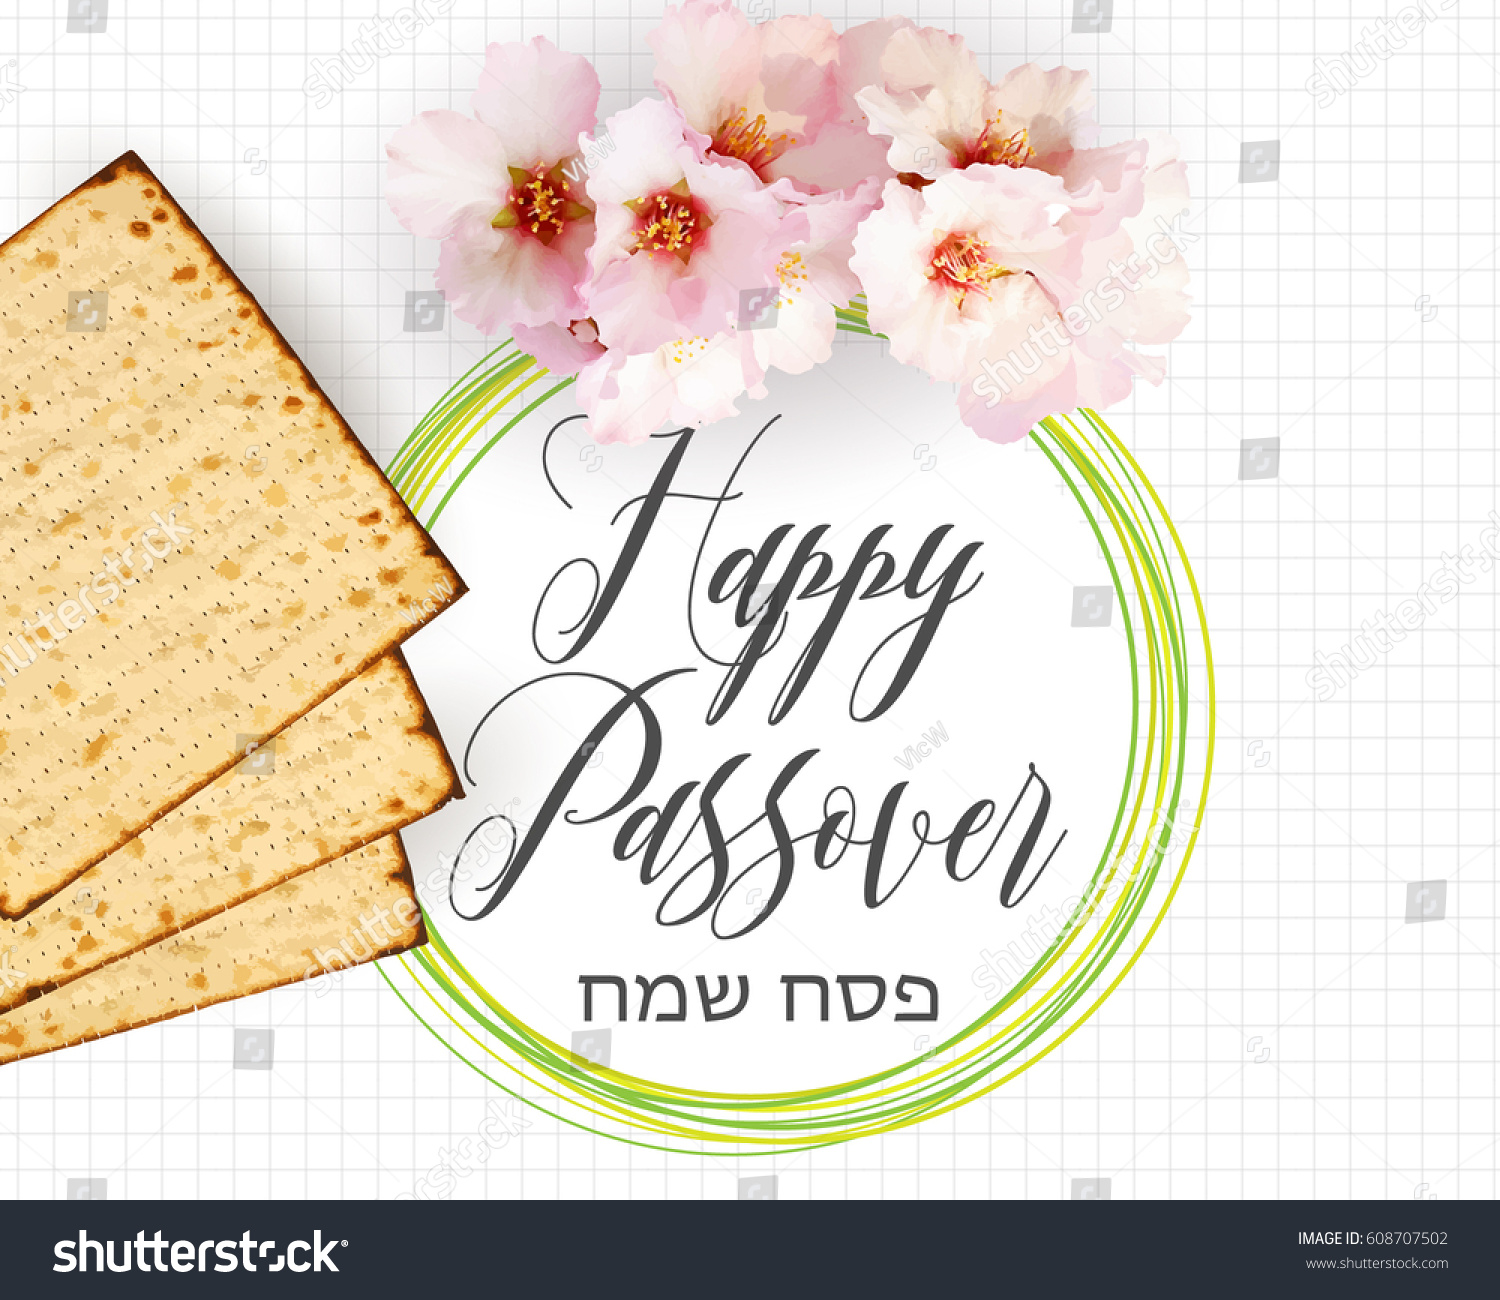 Happy Passover Traditional Jewish Holiday Background Stock Vector